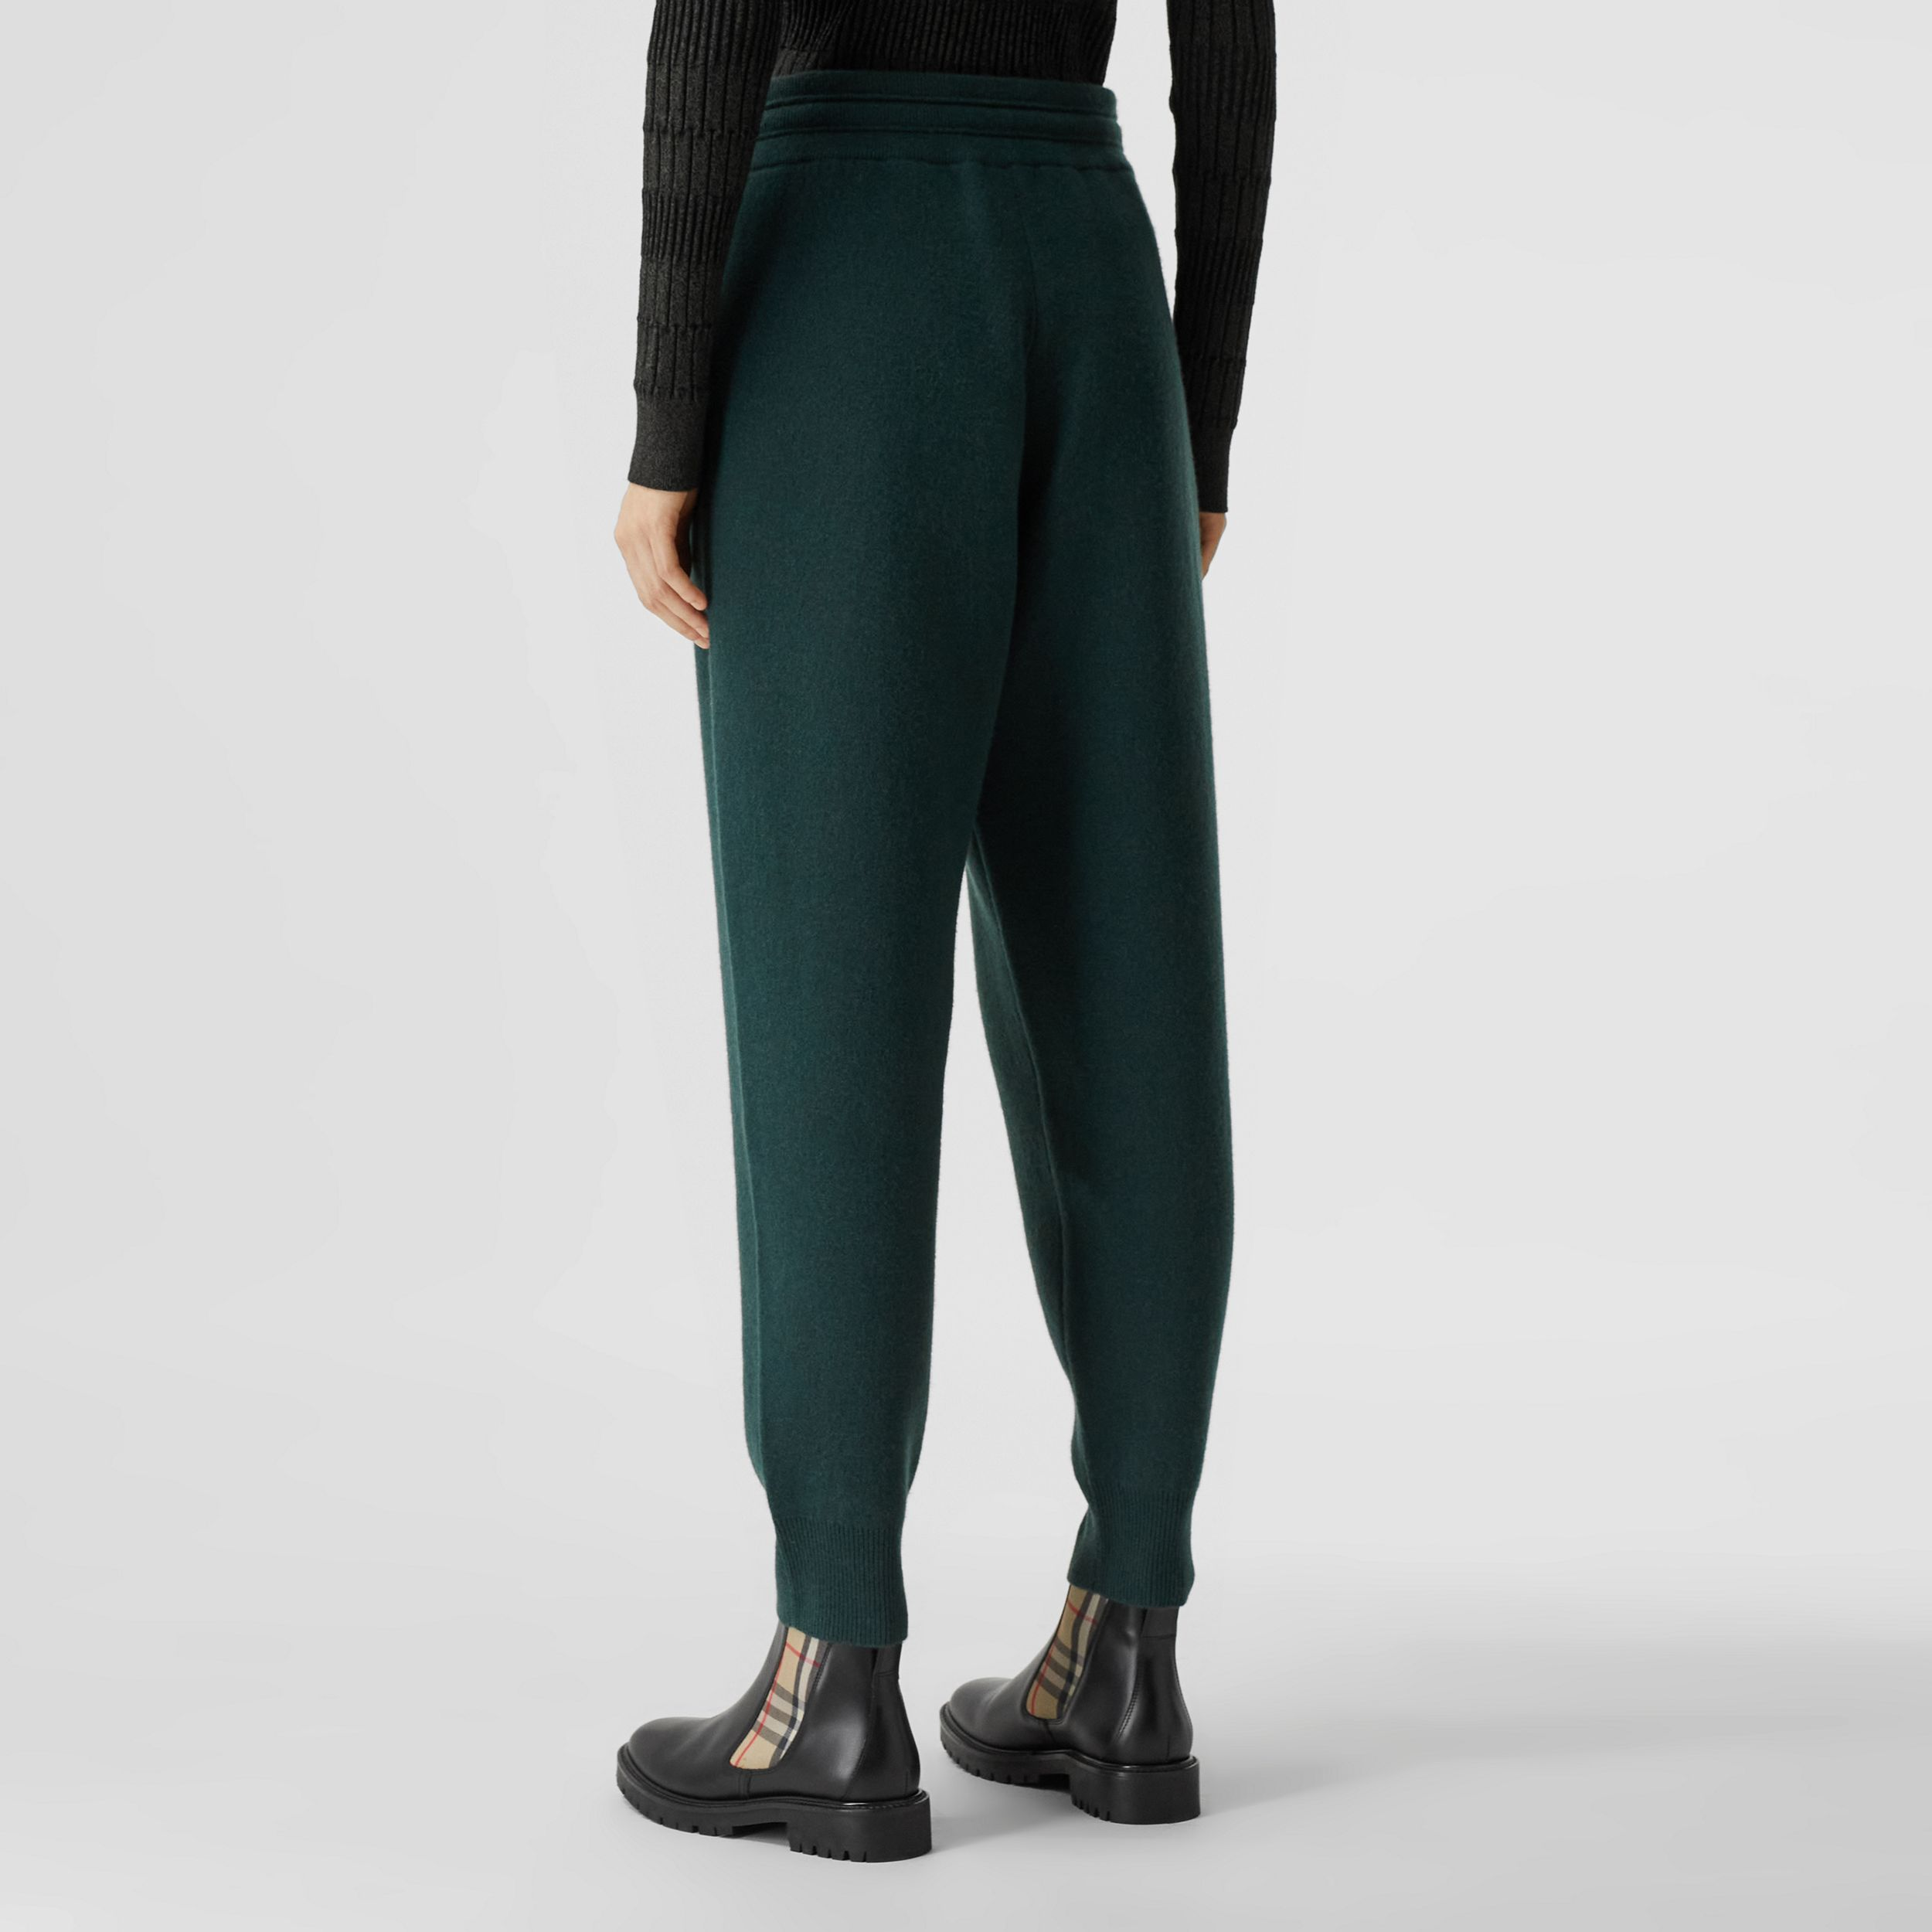 Monogram Motif Cashmere Blend Jogging Pants in Bottle Green - Women | Burberry - 3